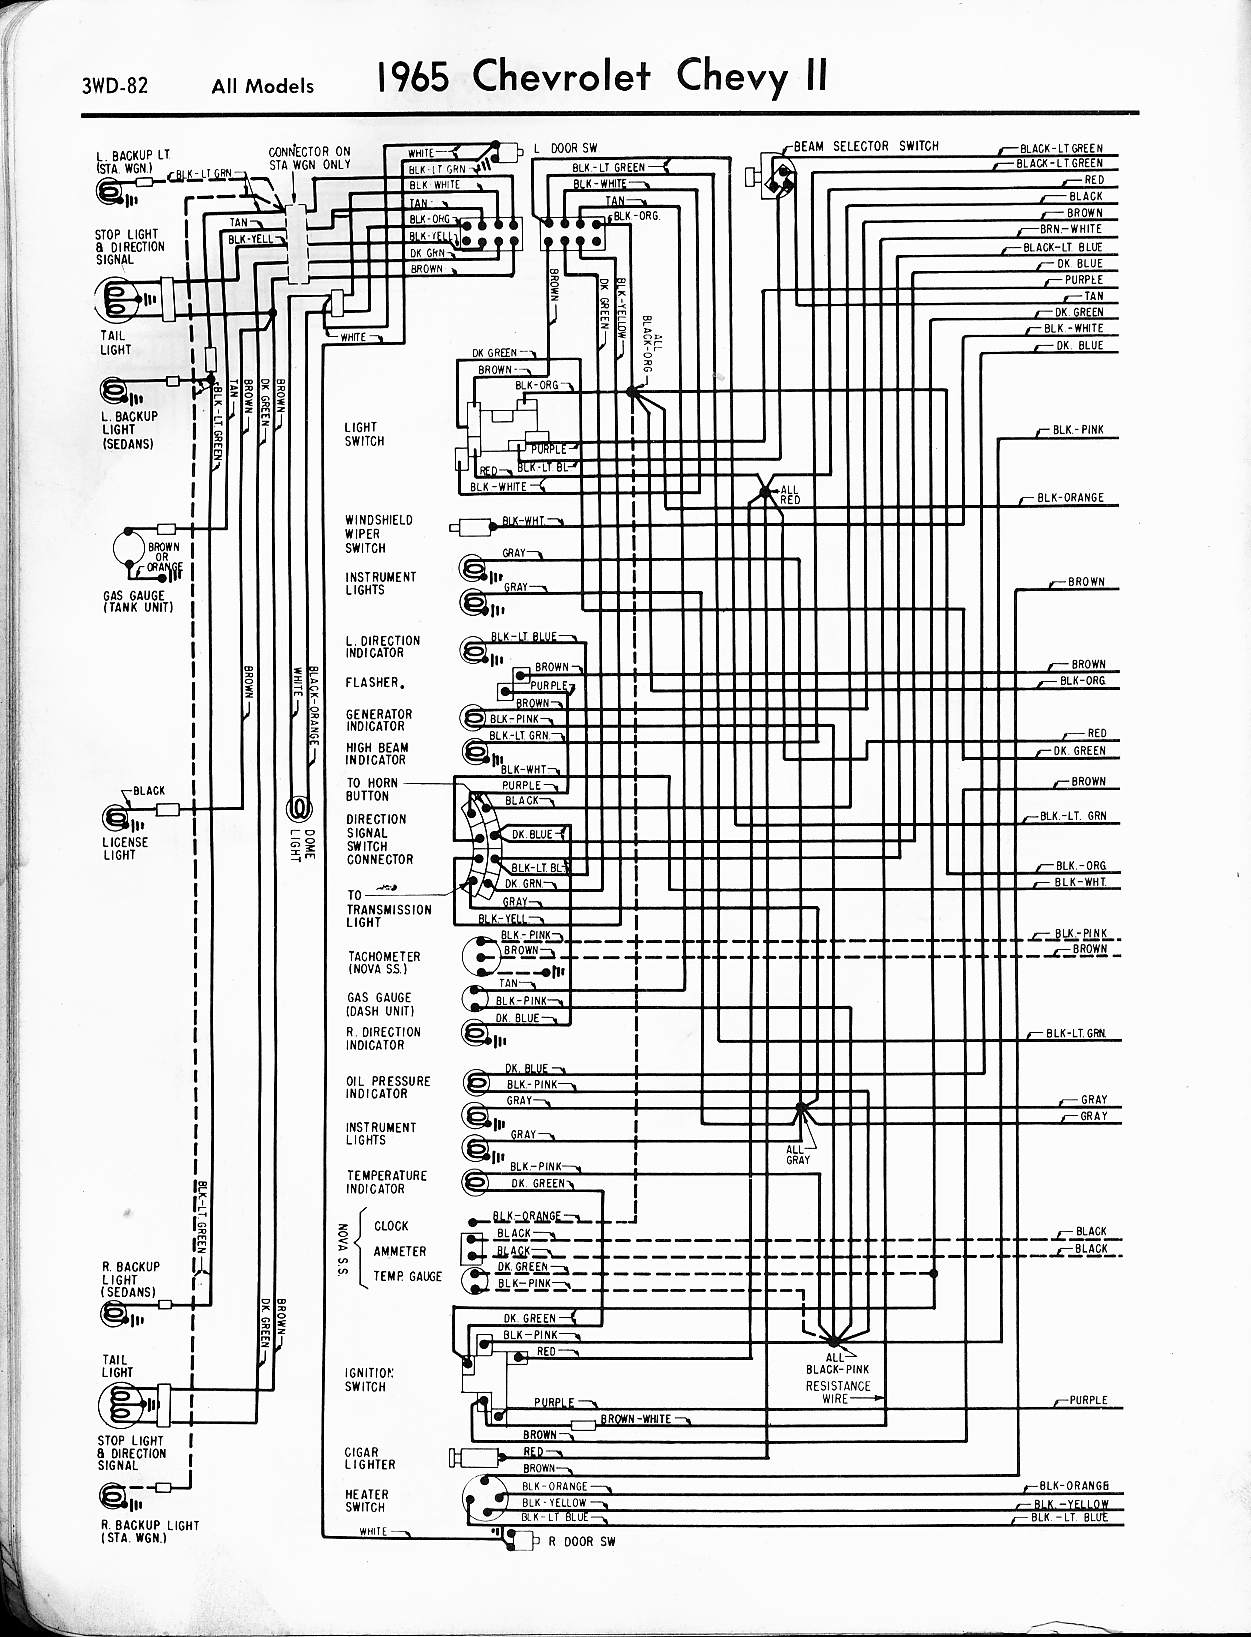 1965 chevy ii wiring diagram: